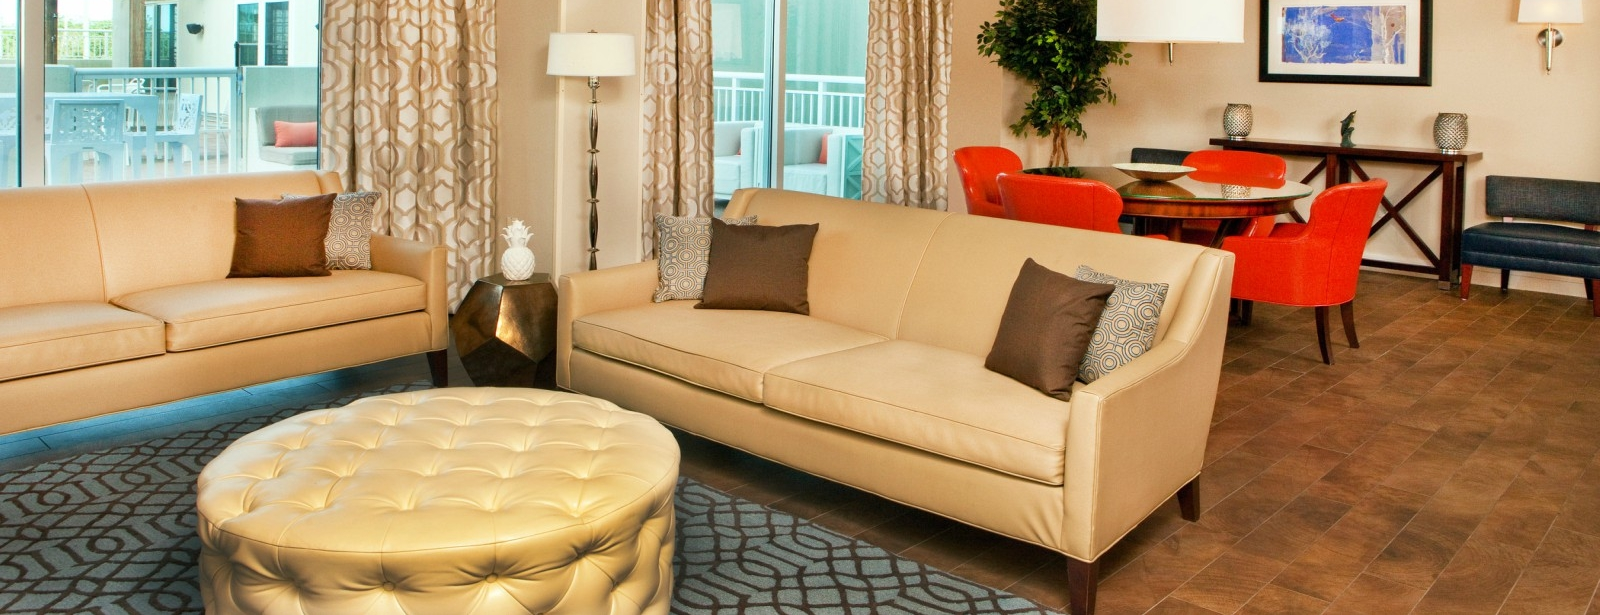 Executive Suite | Sheraton Myrtle Beach Convention Center Hotel